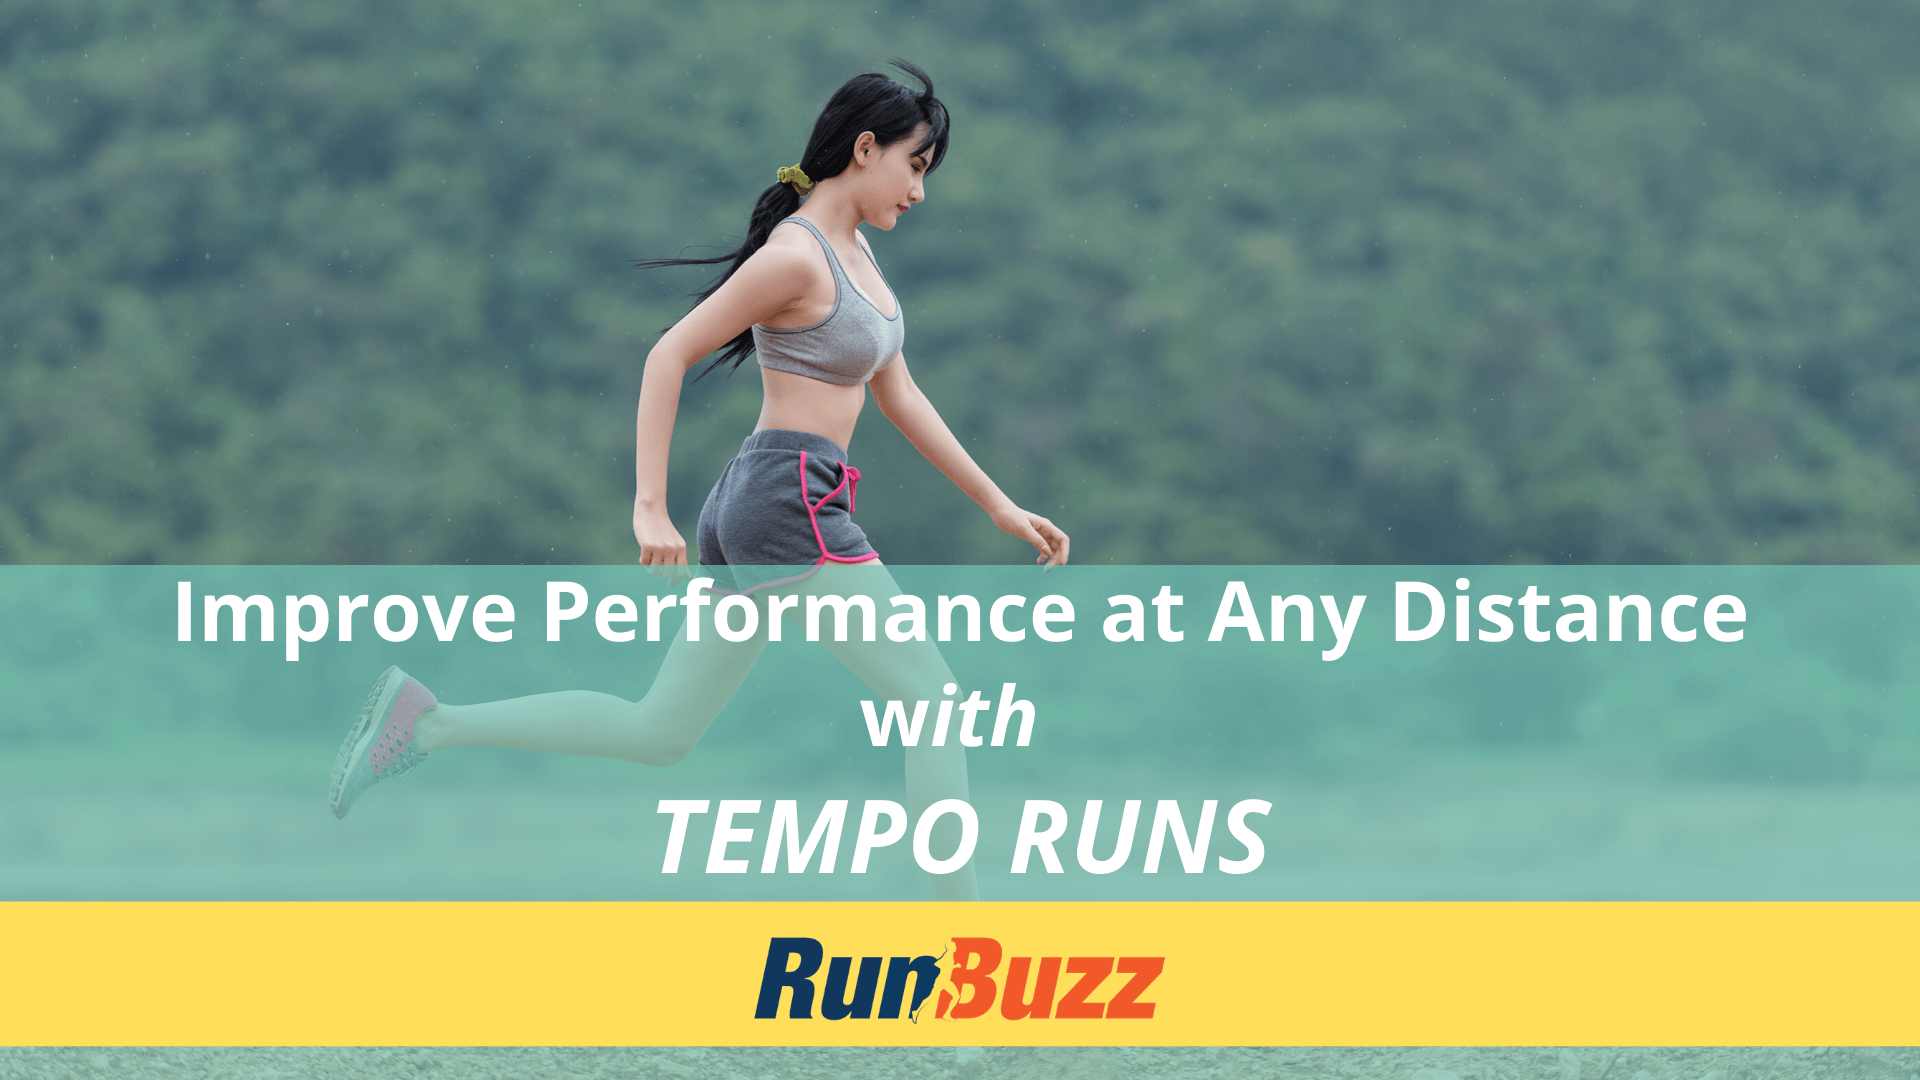 Improve-Performance-at-Any-Distance-with-Tempo-Runs